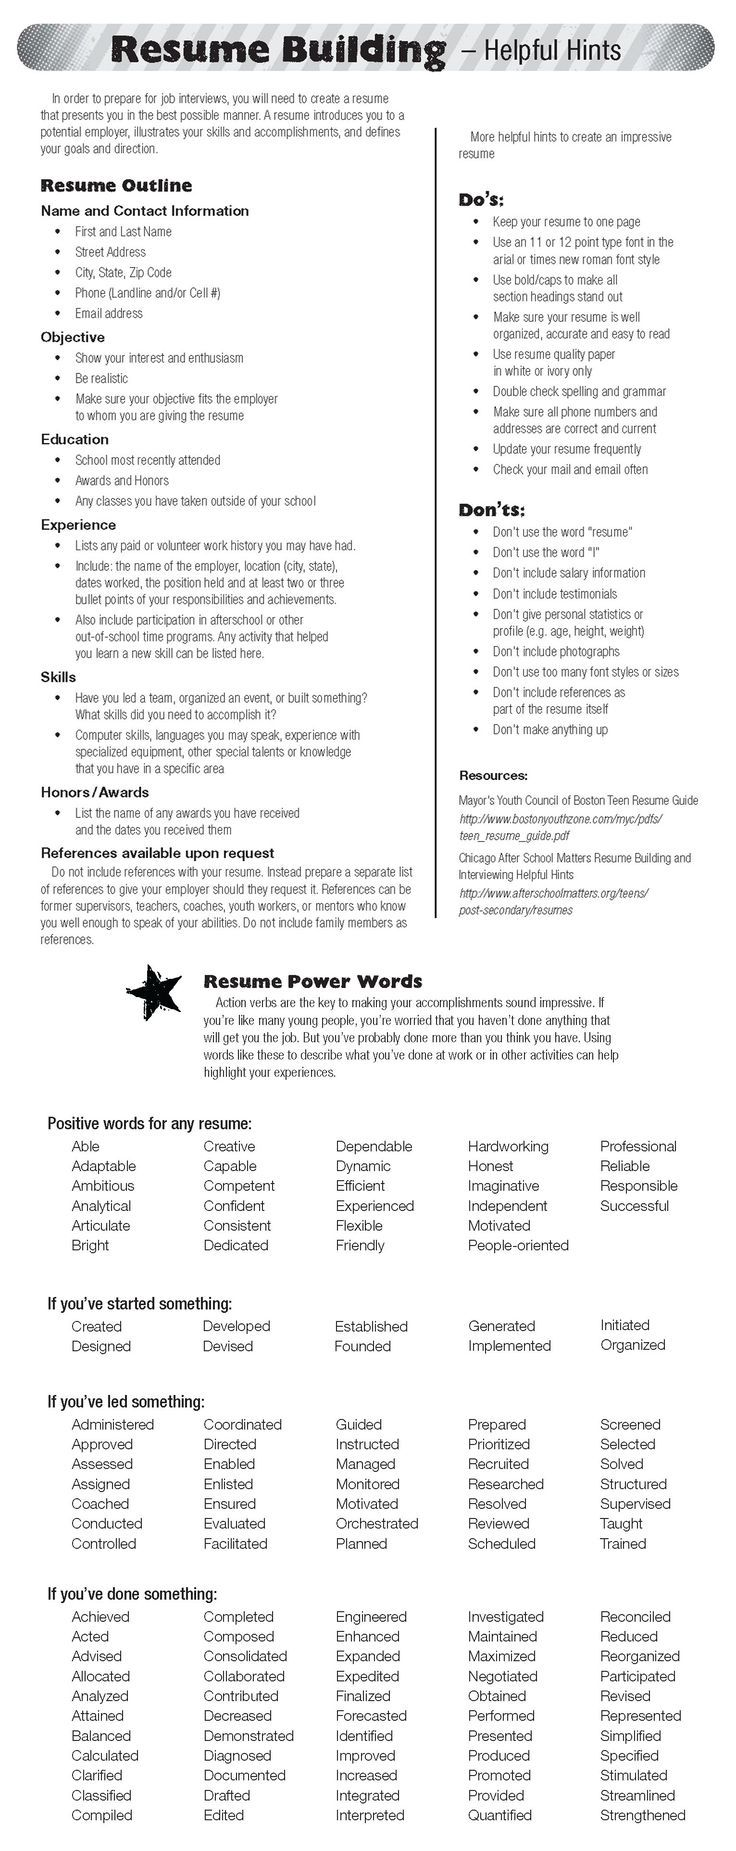 Resume Donts  Best Resume Advice